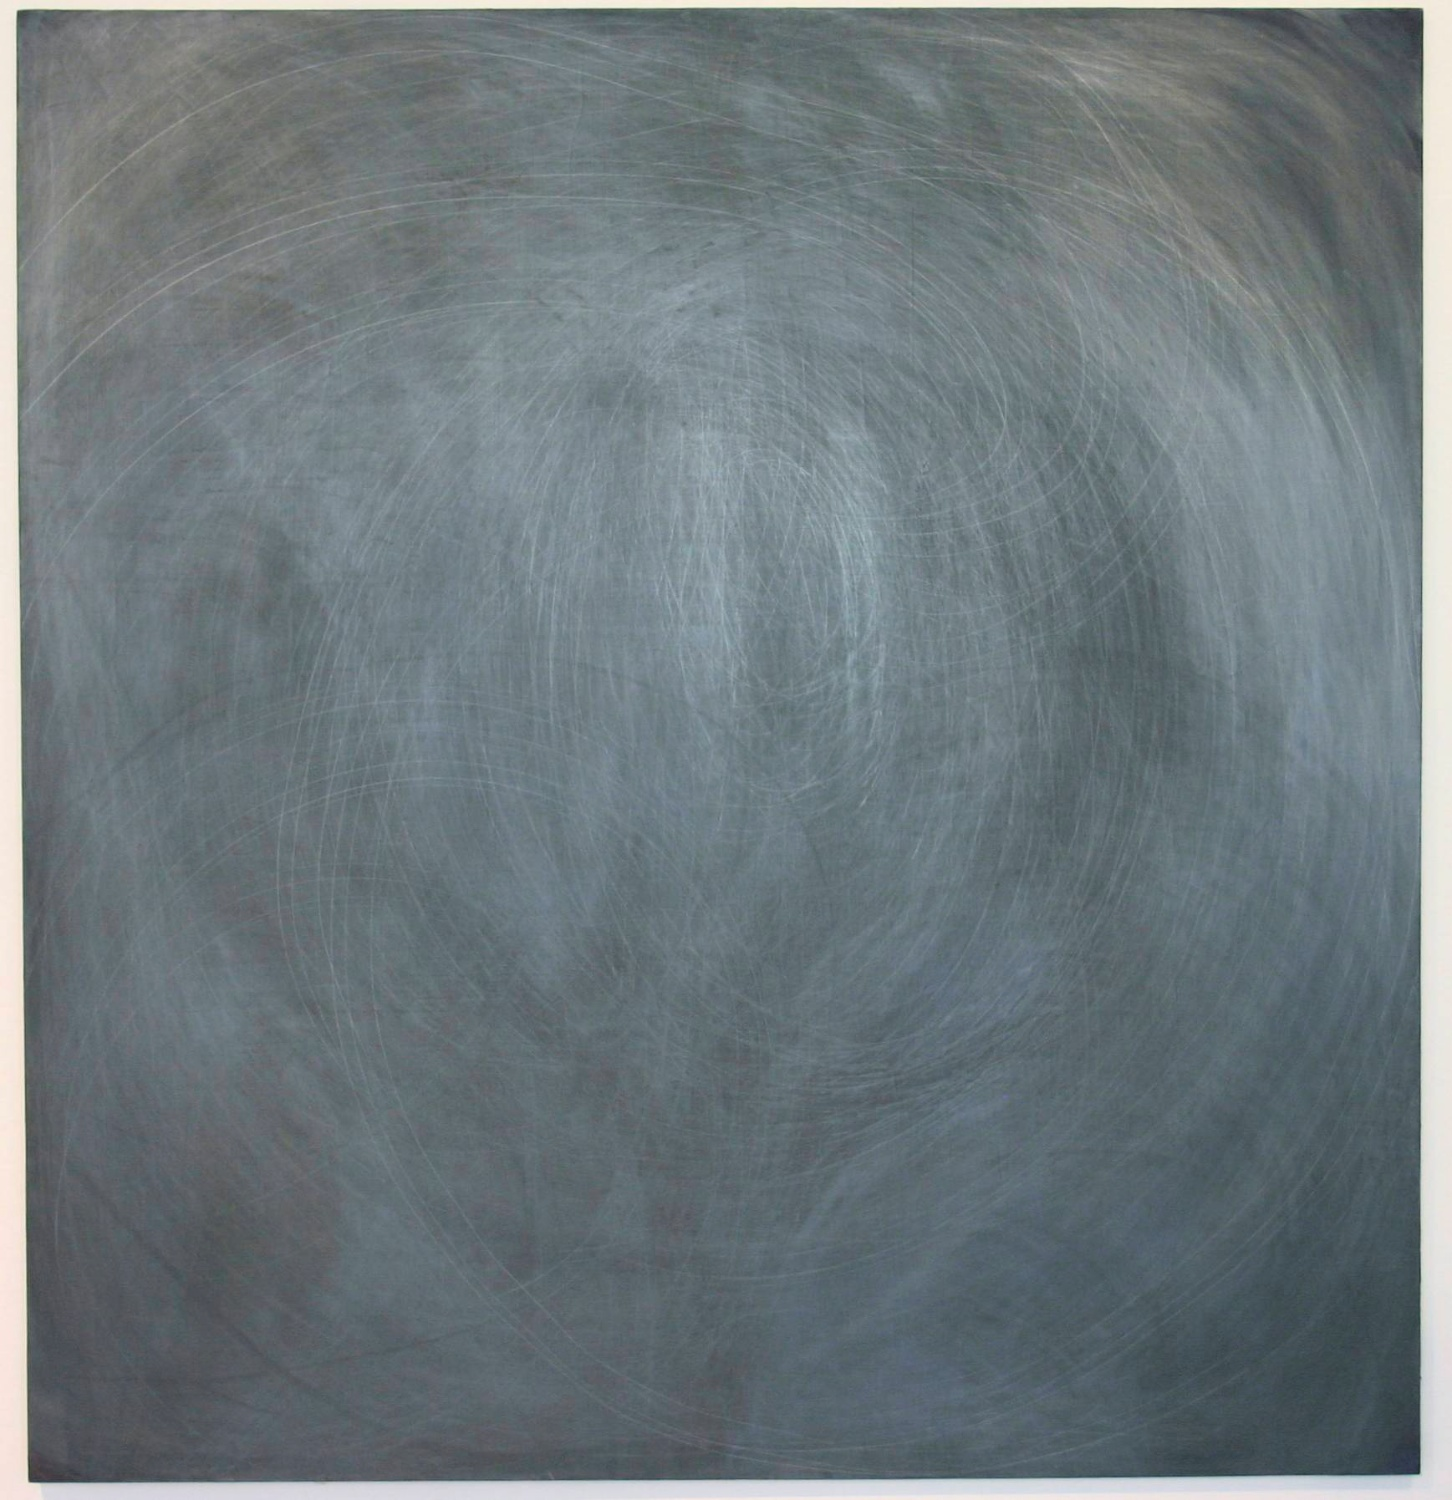 """Aliza Nisenbaum Untitled 2007 Oil and graphite on canvas 72 ½"""" x 69"""" AN015"""